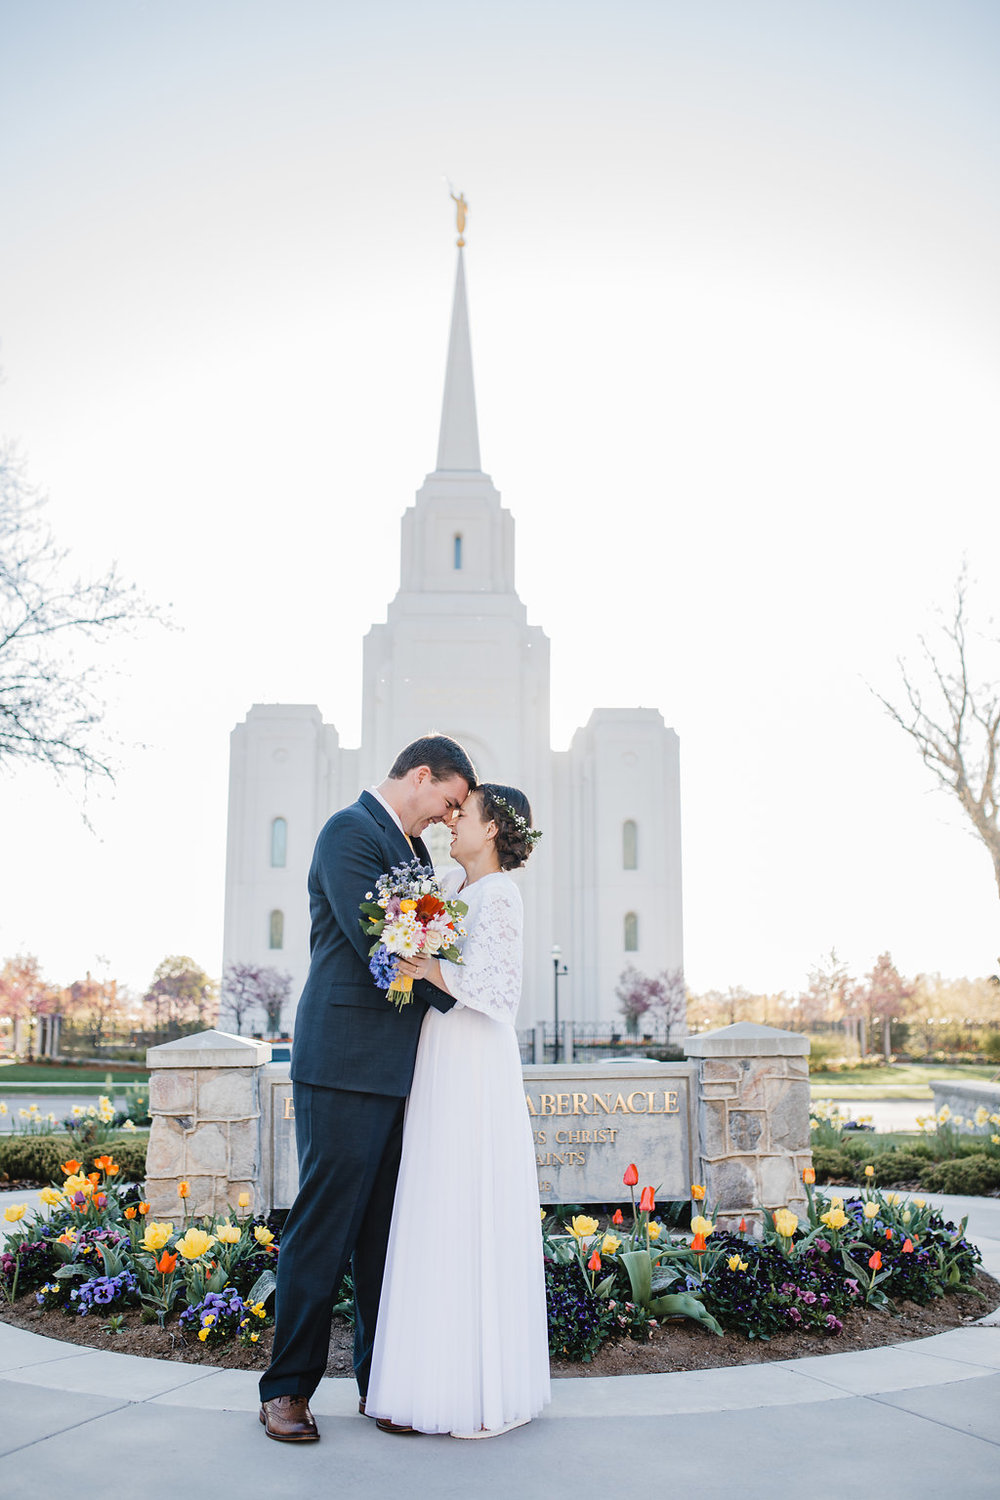 brigham city lds temple wedding northern utah formals photographer box elder mormon modest wedding dress lace sleeves blue suit